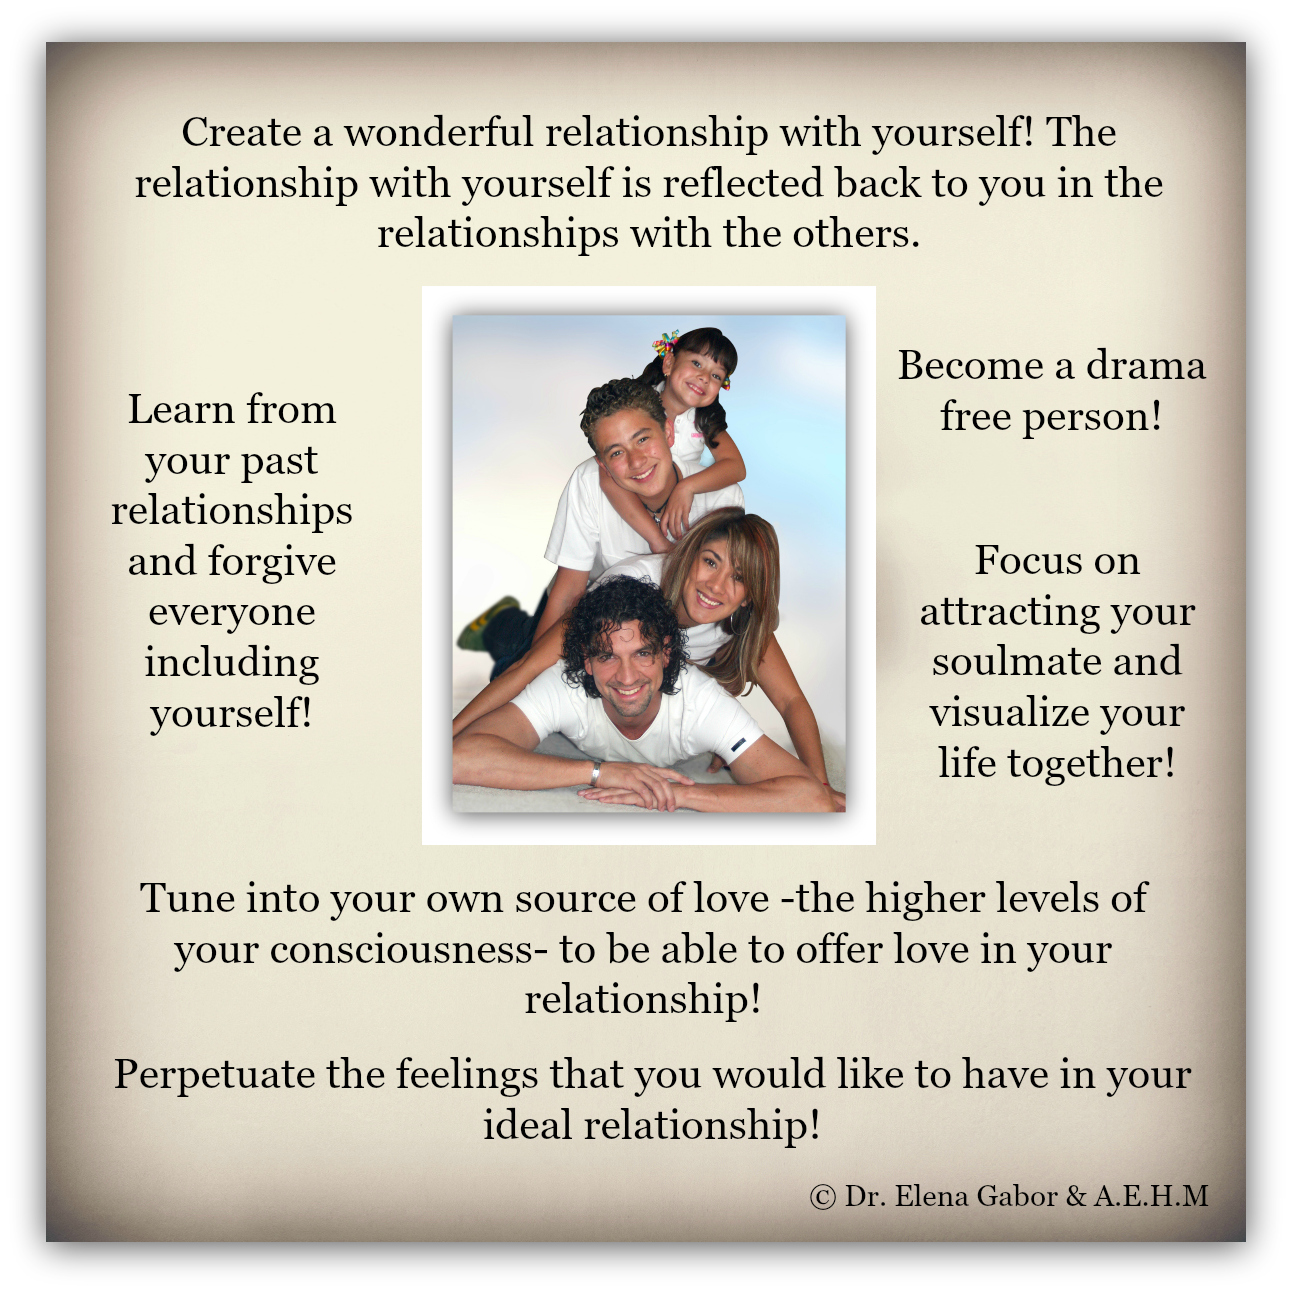 Hypnotherapy For Attracting Your Desired Love Relationship Dr Gabor